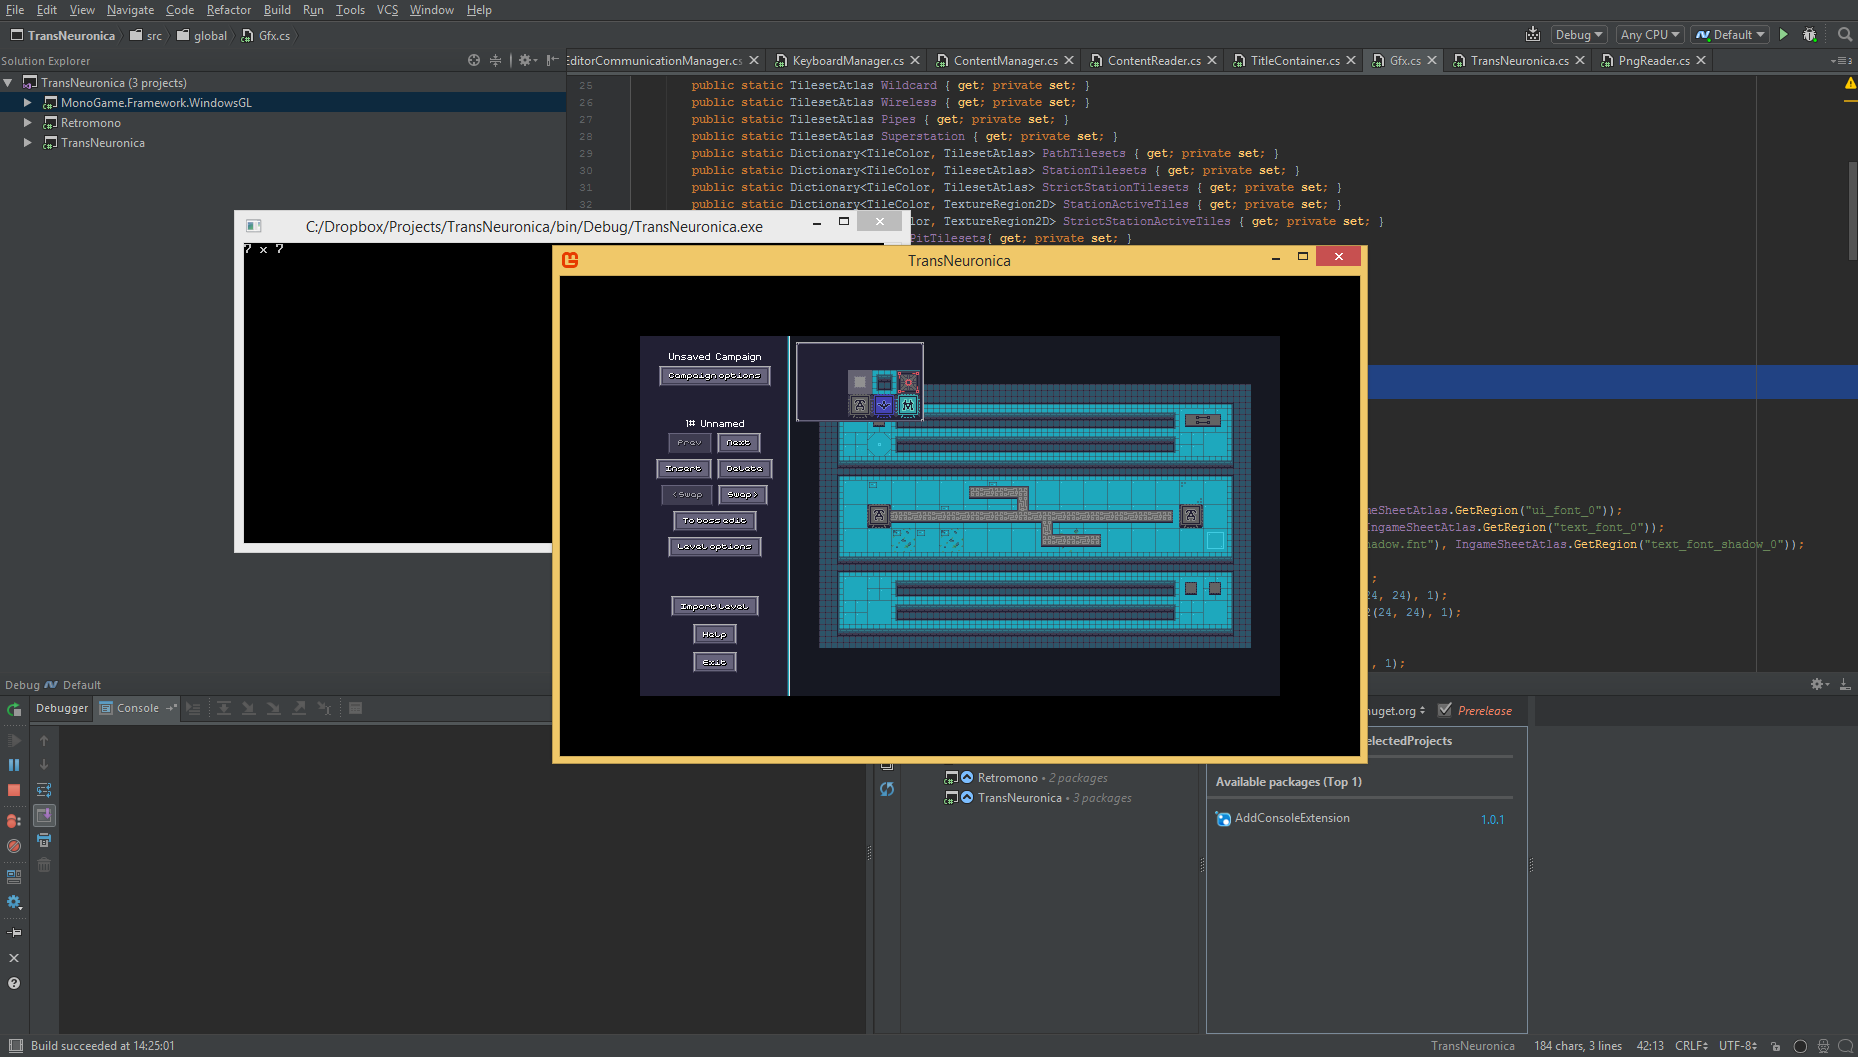 Trans Neuronica running in the new version of Monogame built from the source code